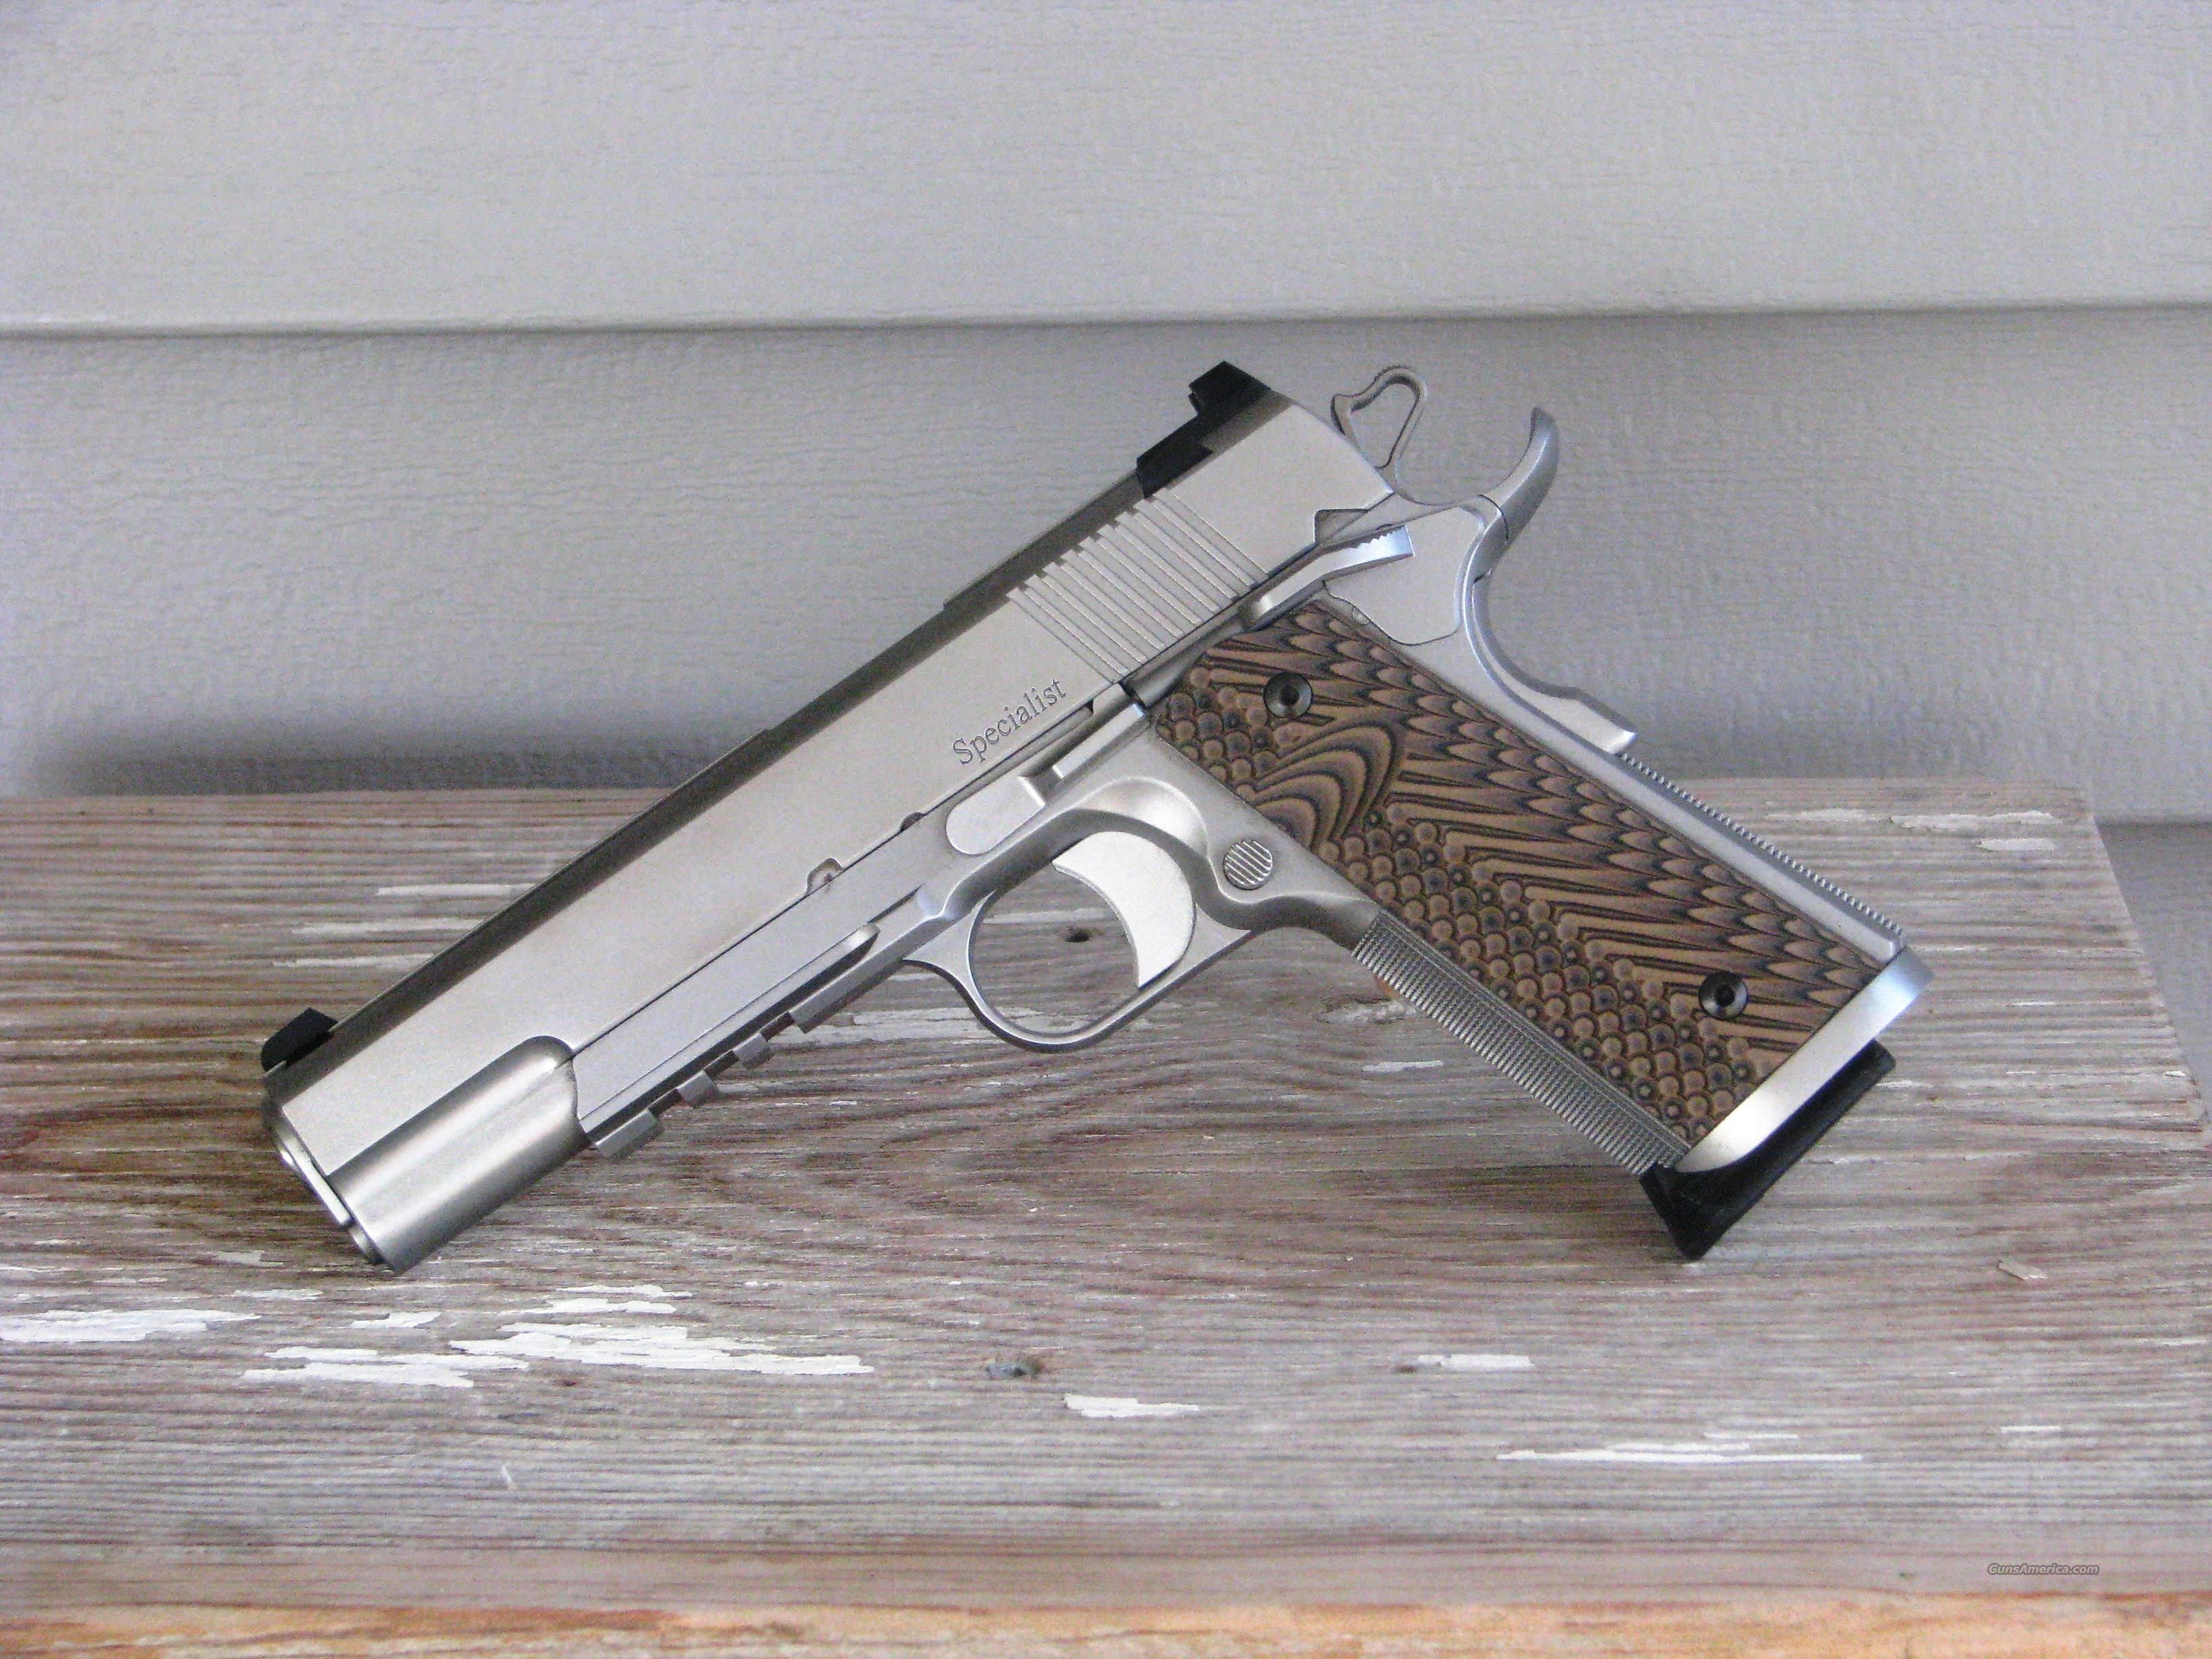 CZ 1911 Dan Wesson Specialist EASY PAY $132 01992  Guns > Pistols > Dan Wesson Pistols/Revolvers > 1911 Style